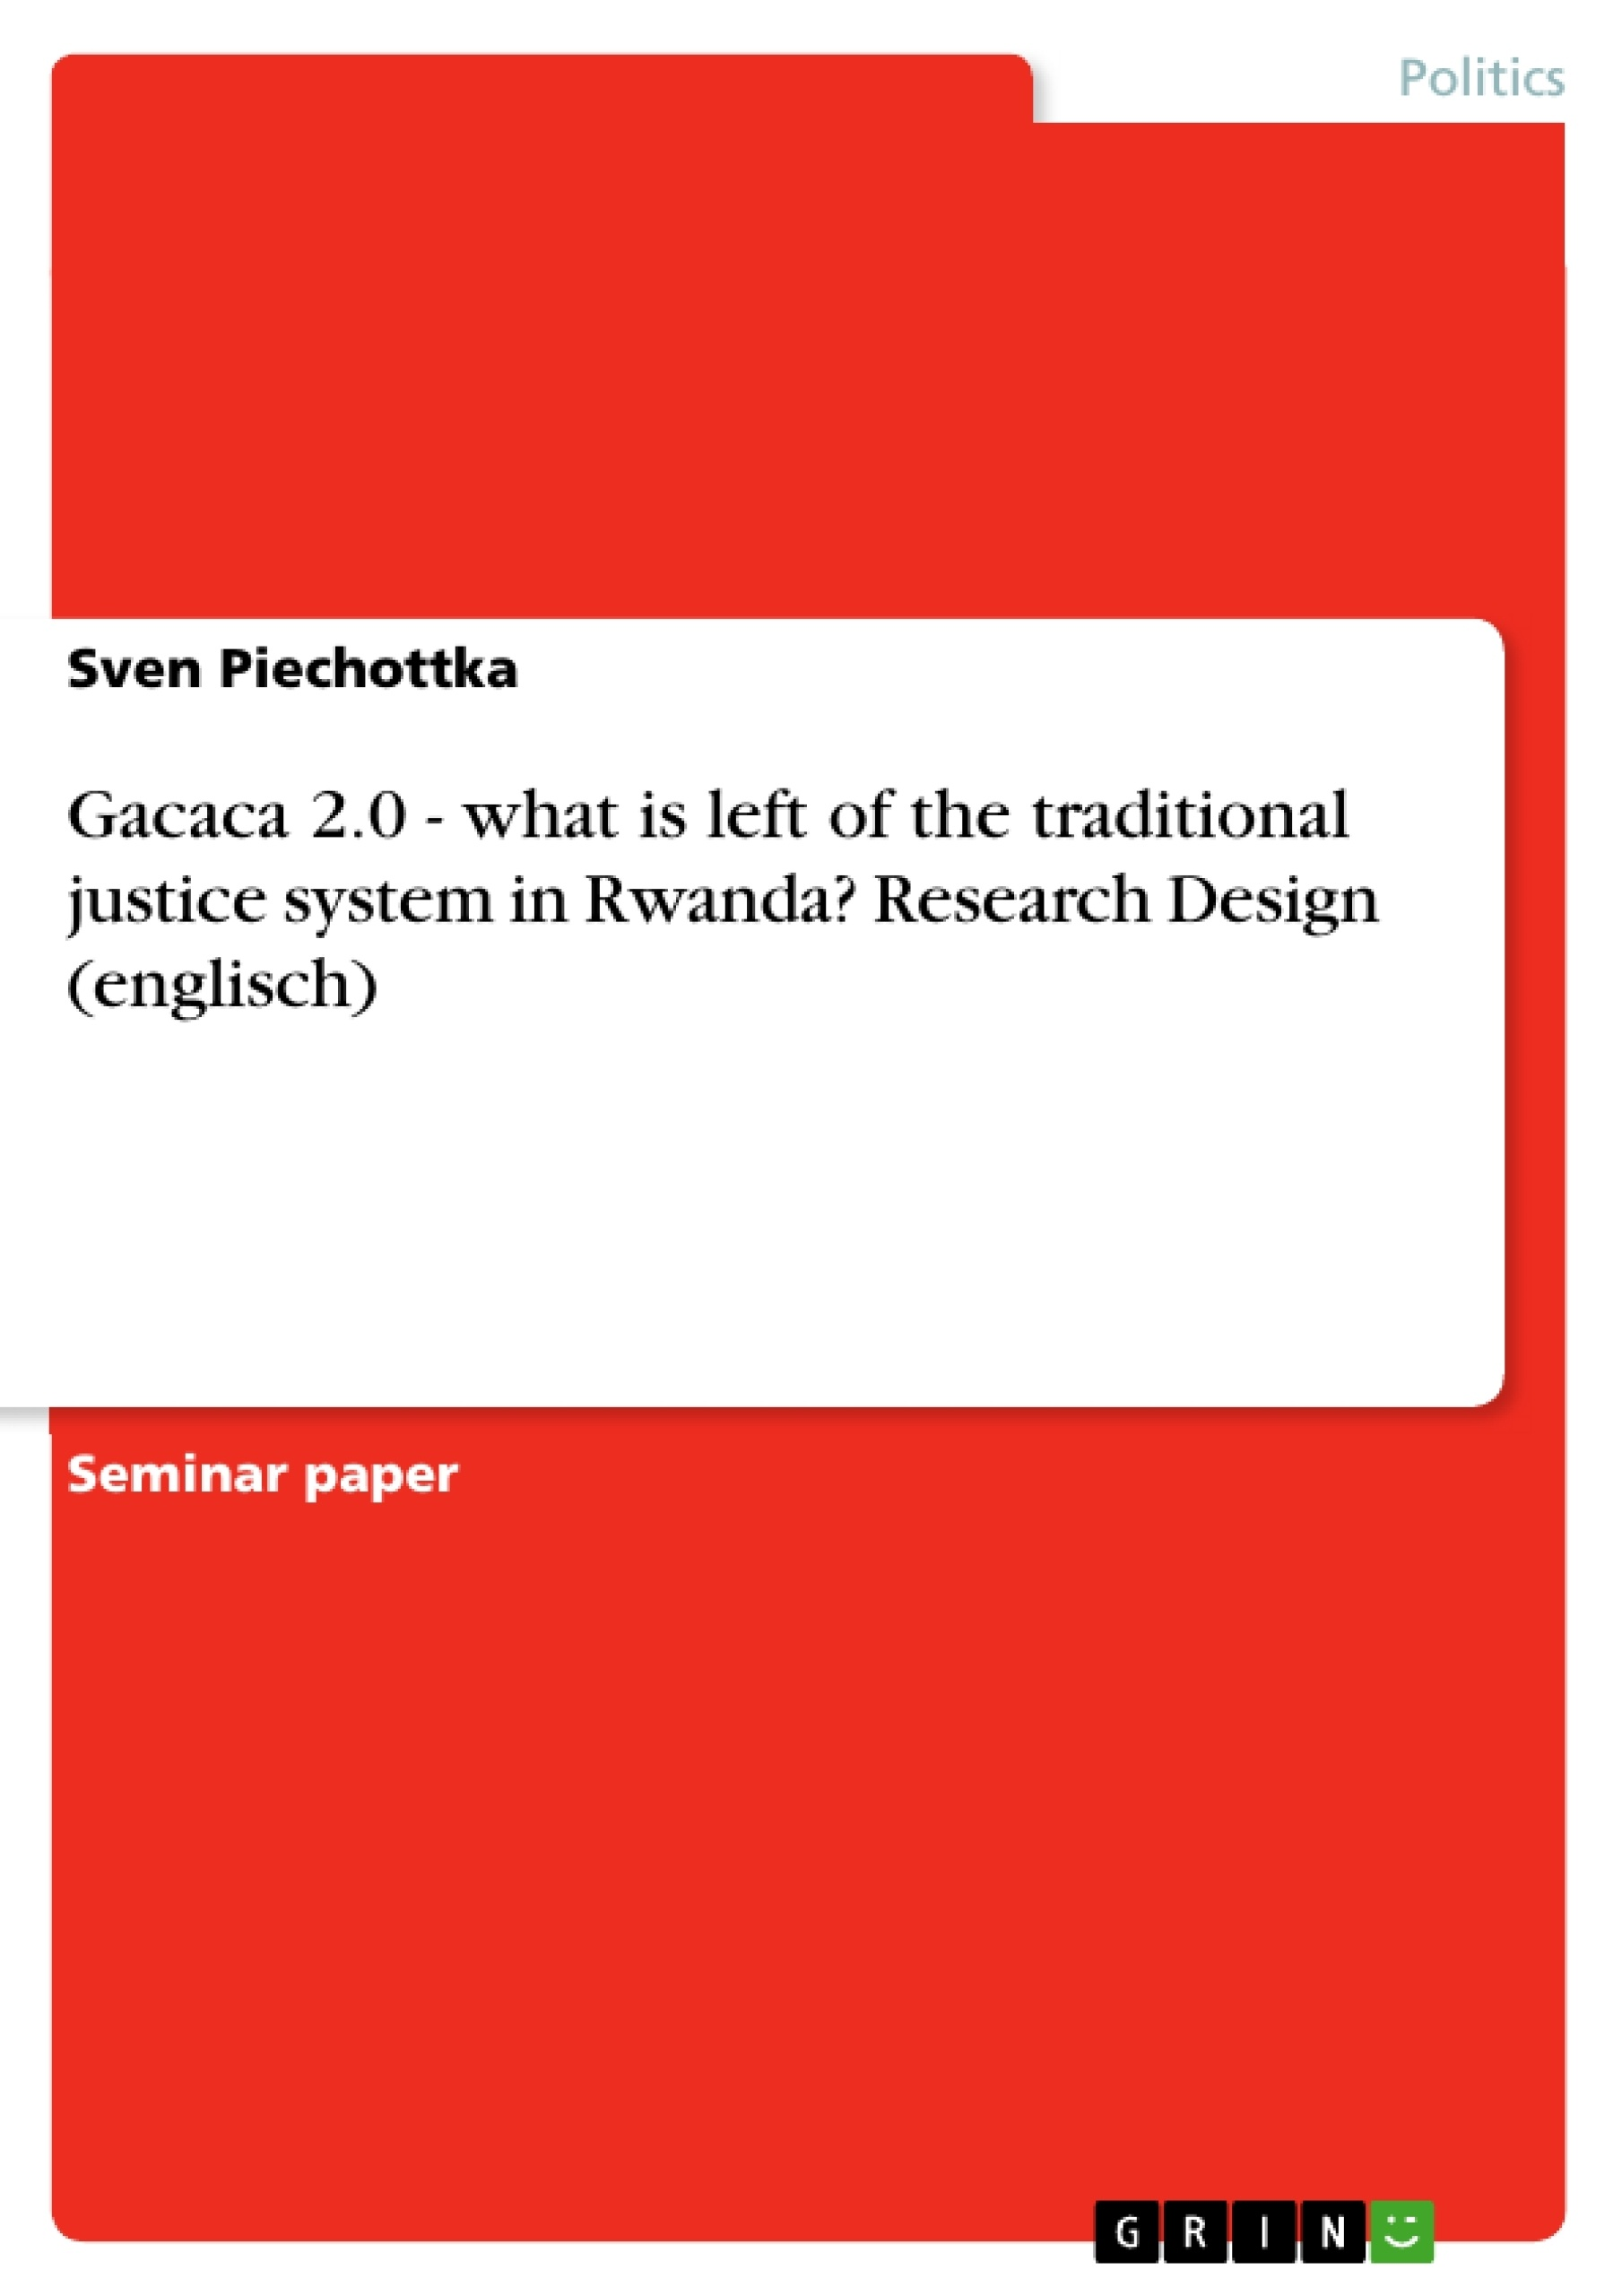 Title: Gacaca 2.0 - what is left of the traditional justice system in Rwanda? Research Design (englisch)